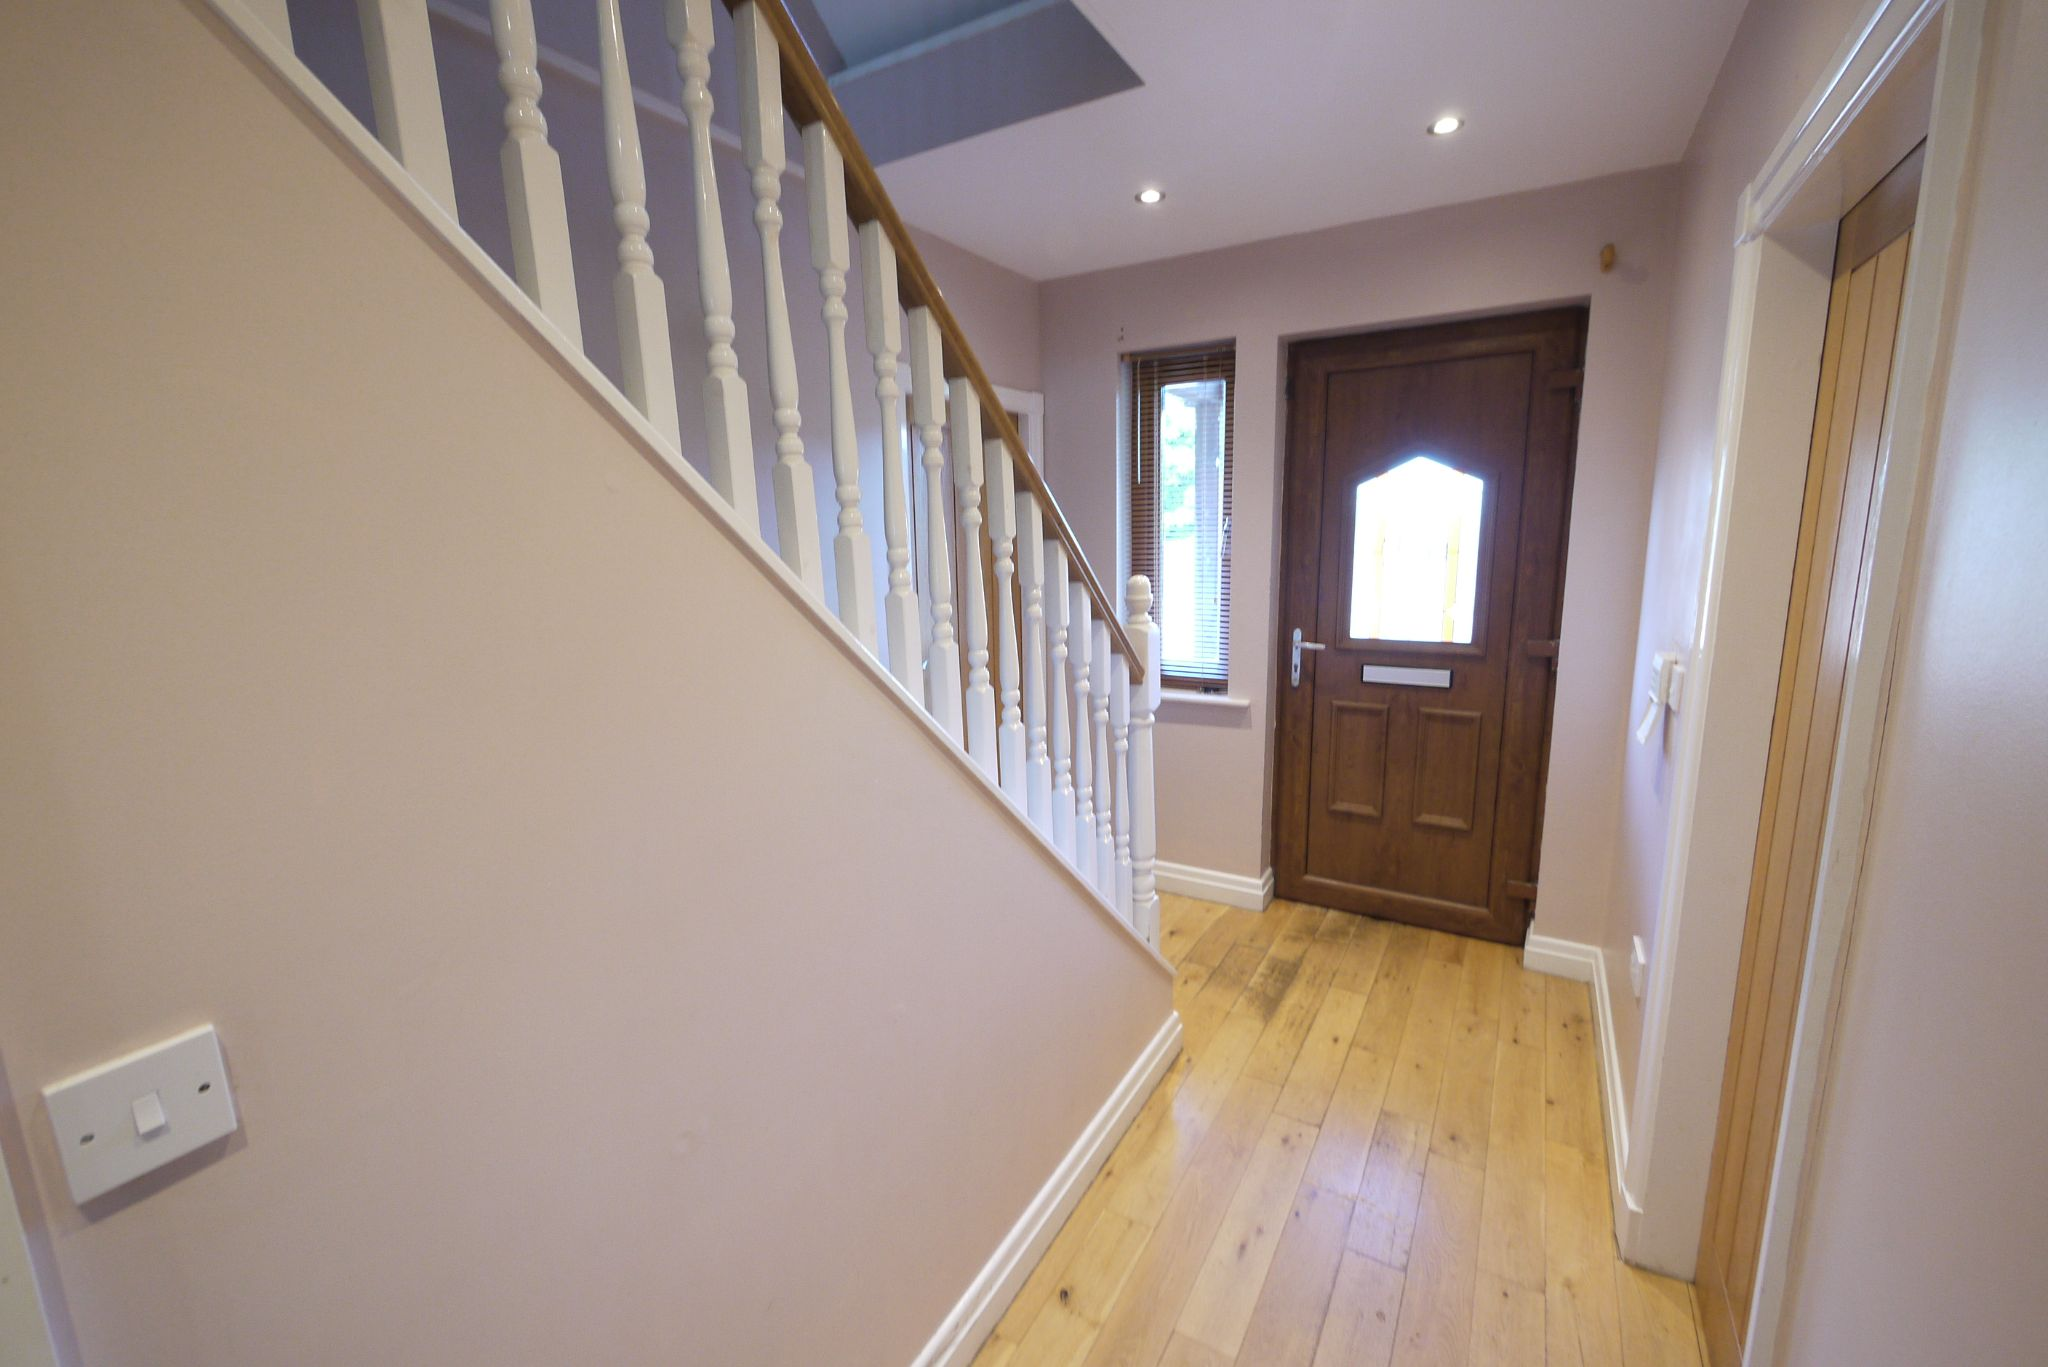 5 bedroom detached house For Sale in Brighouse - Photograph 5.